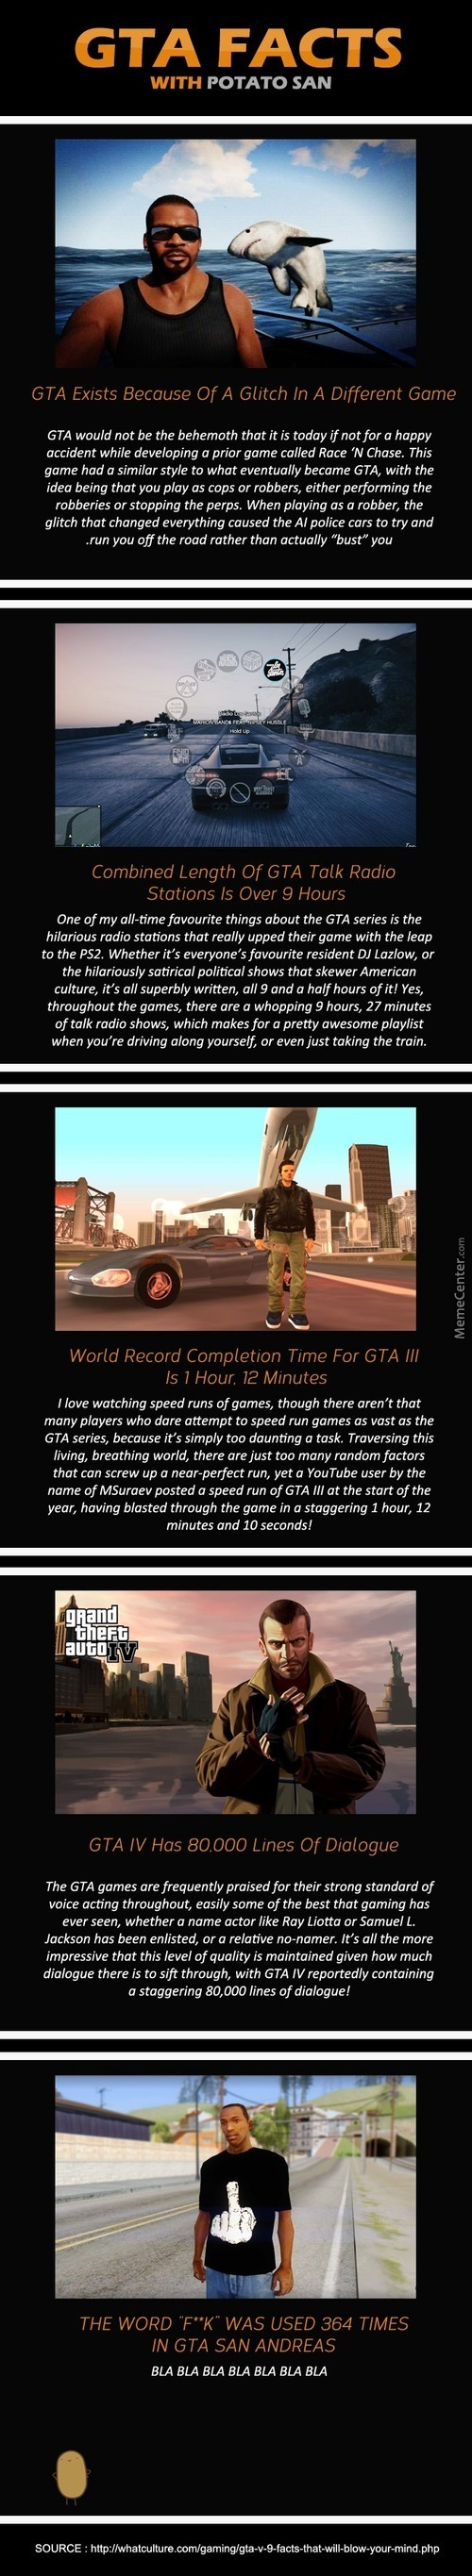 Dem Gta Facts You Never Knew Before